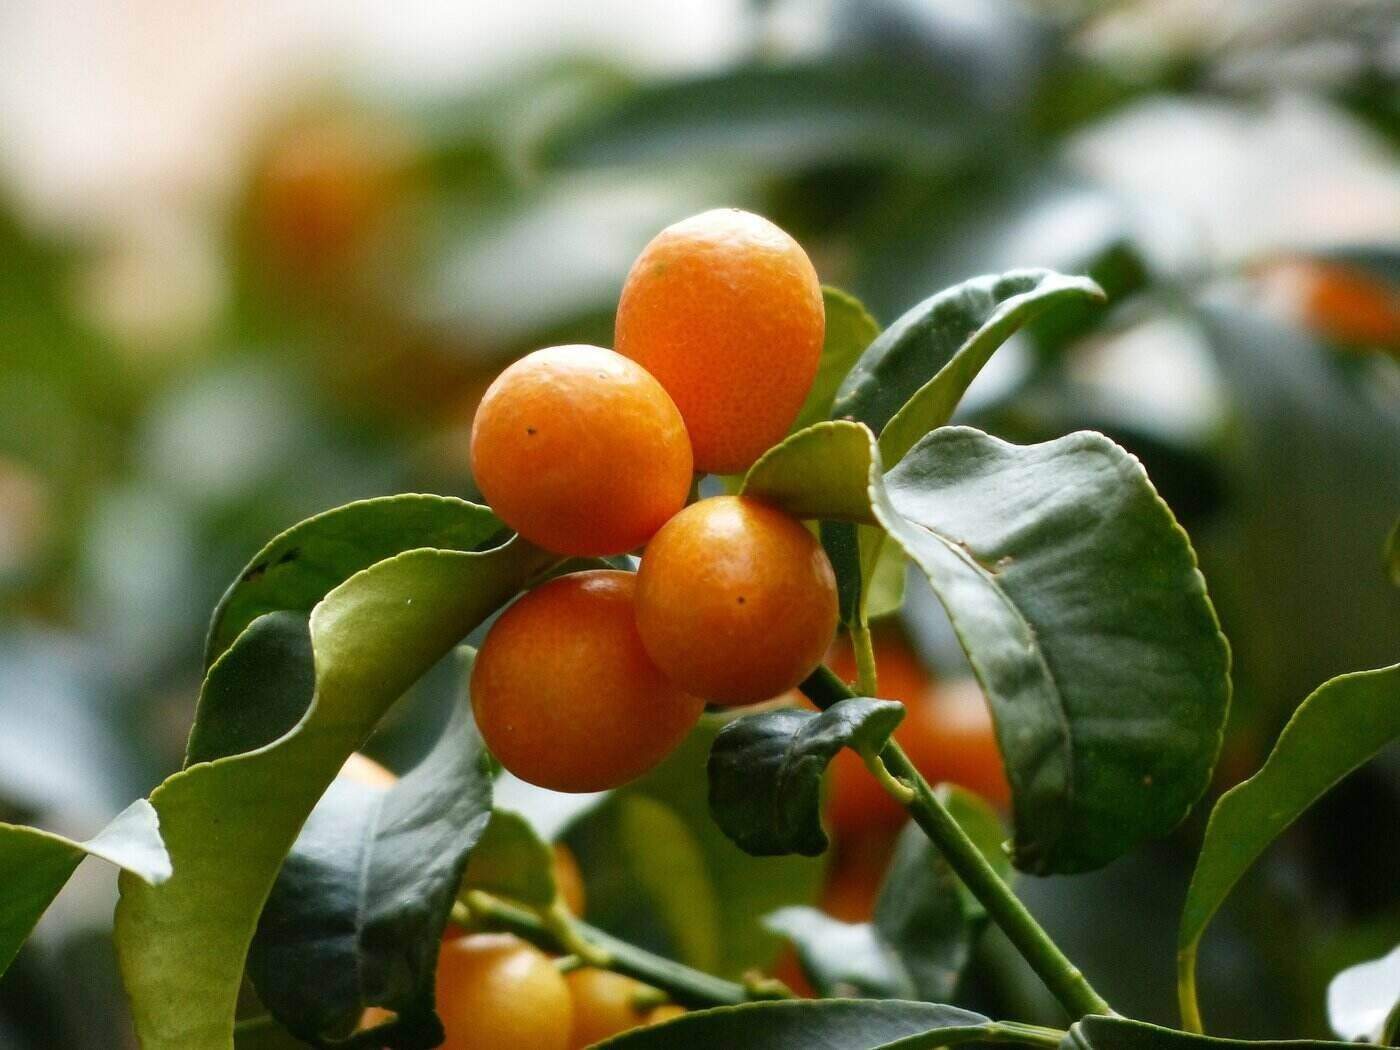 kumquats on branch - 5 citrus fruits to grow in a greenhouse